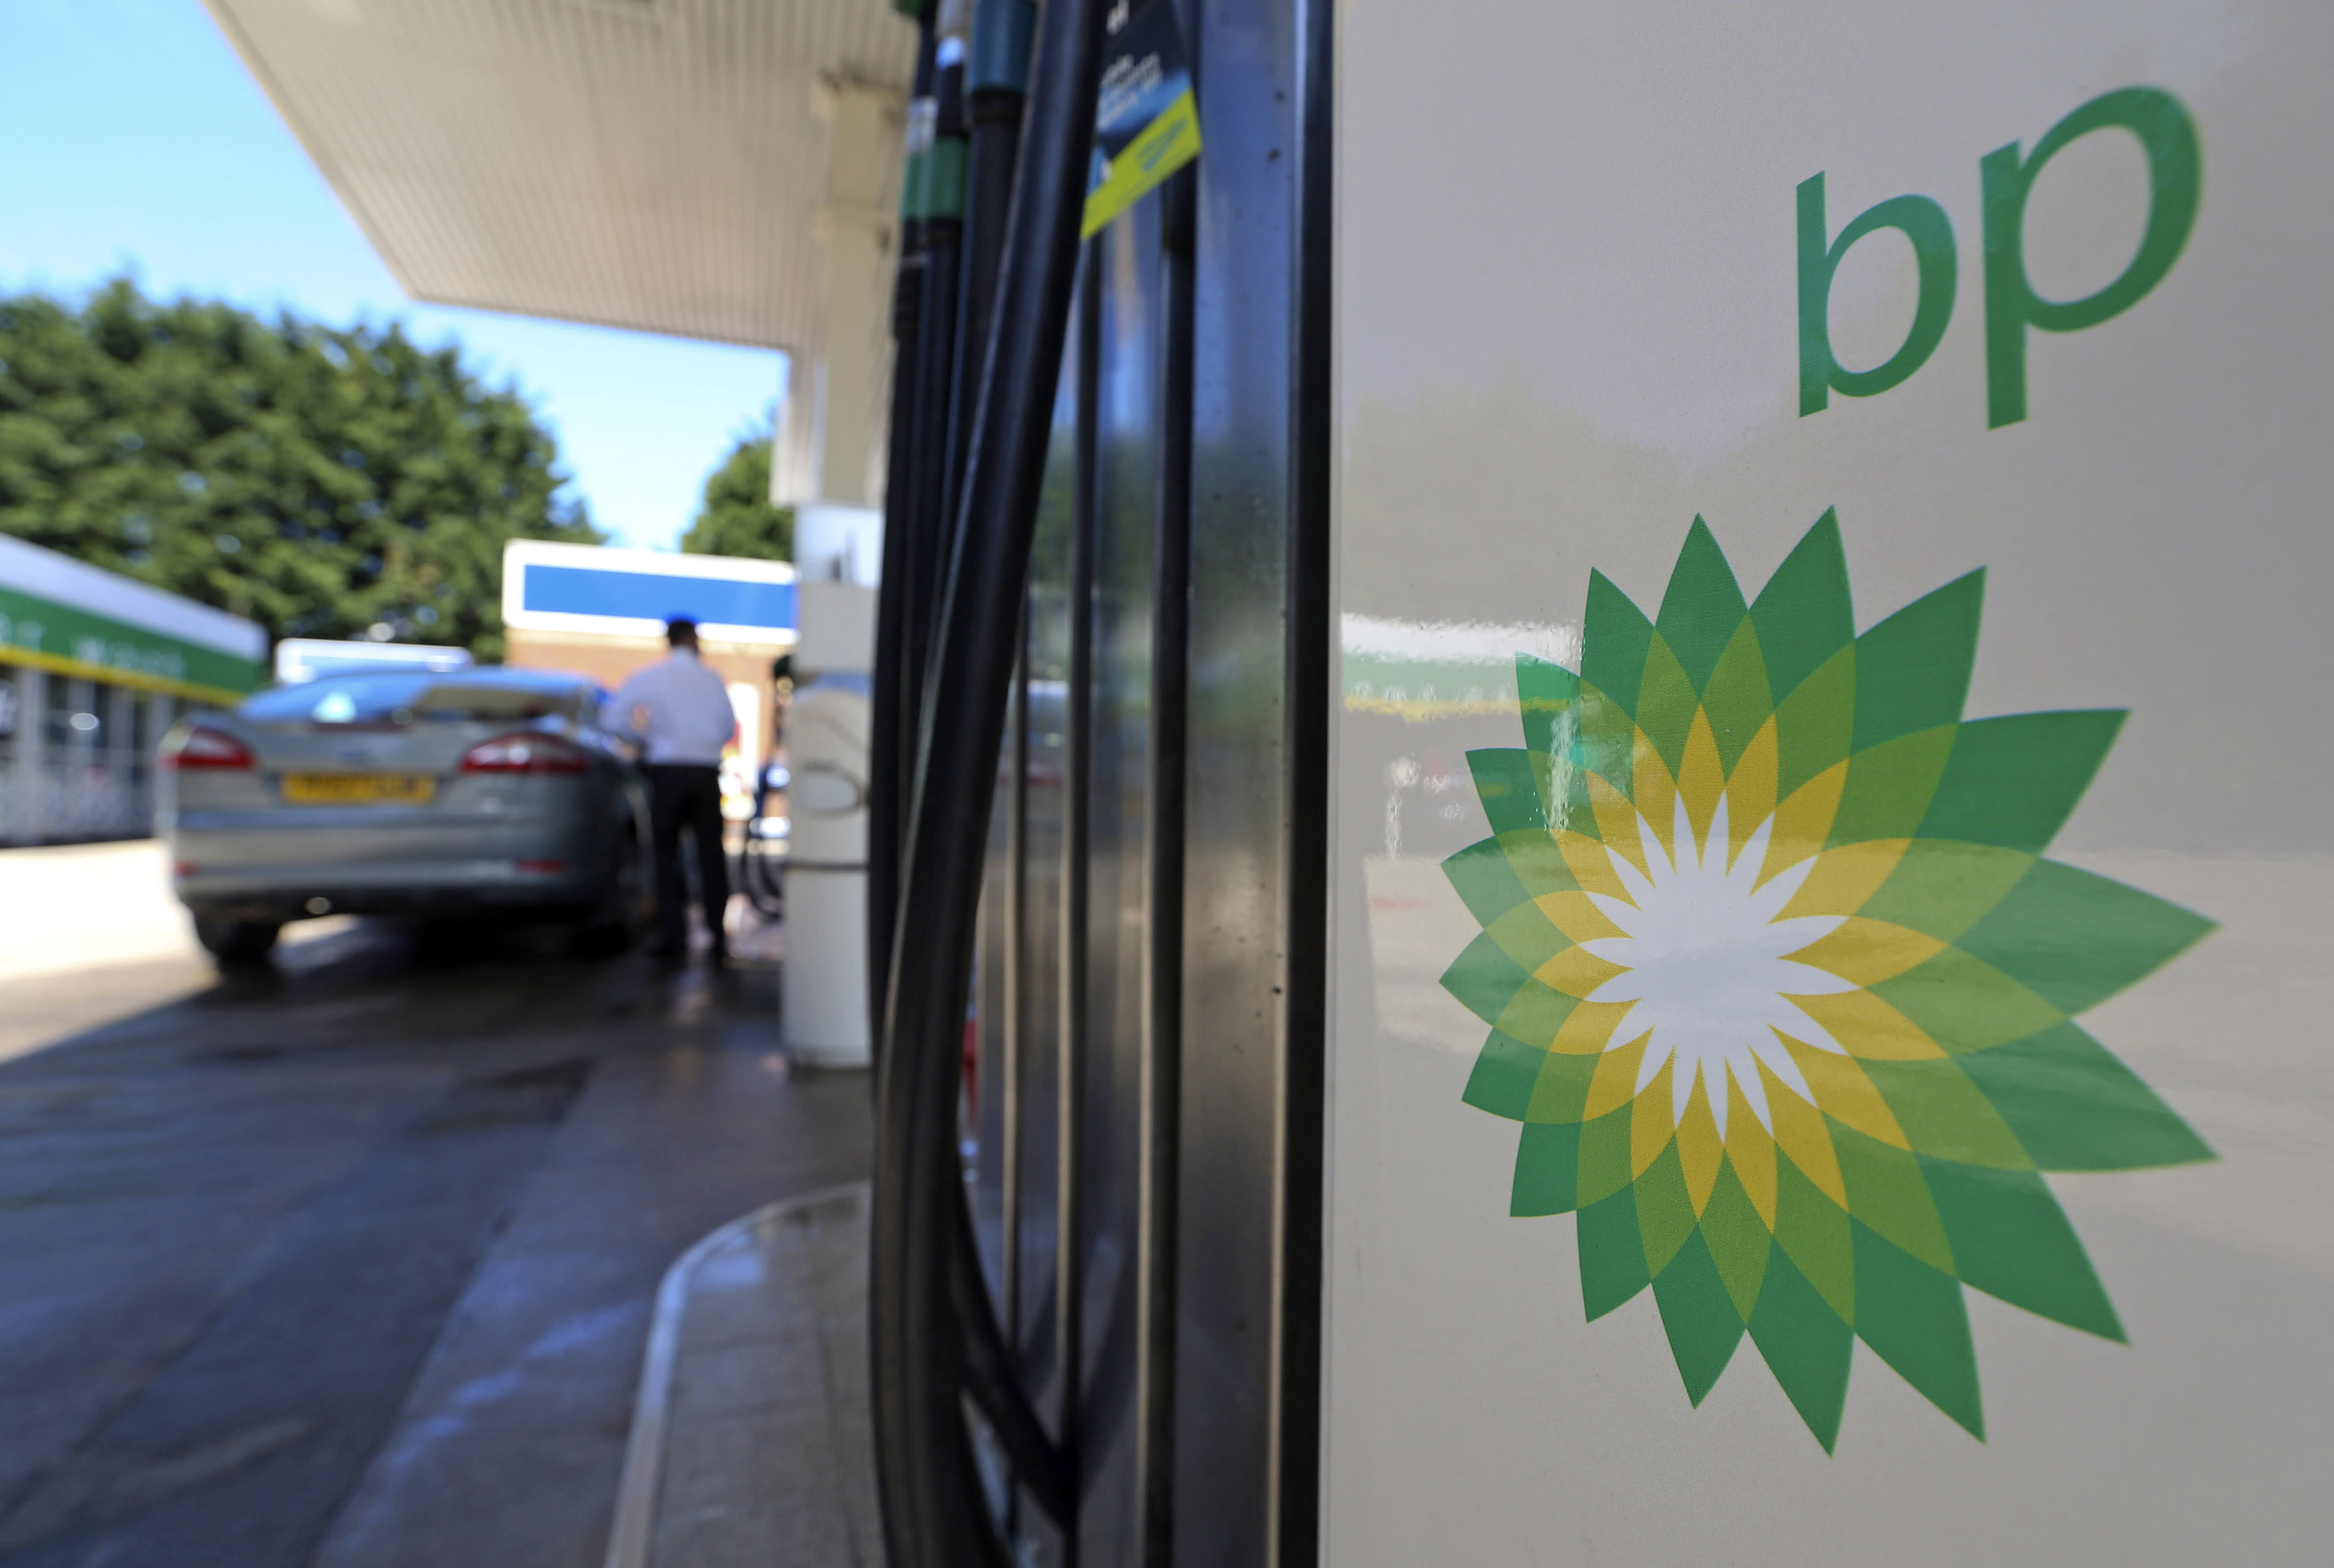 BP shuts down London HQ on CEO's first day amid climate protests